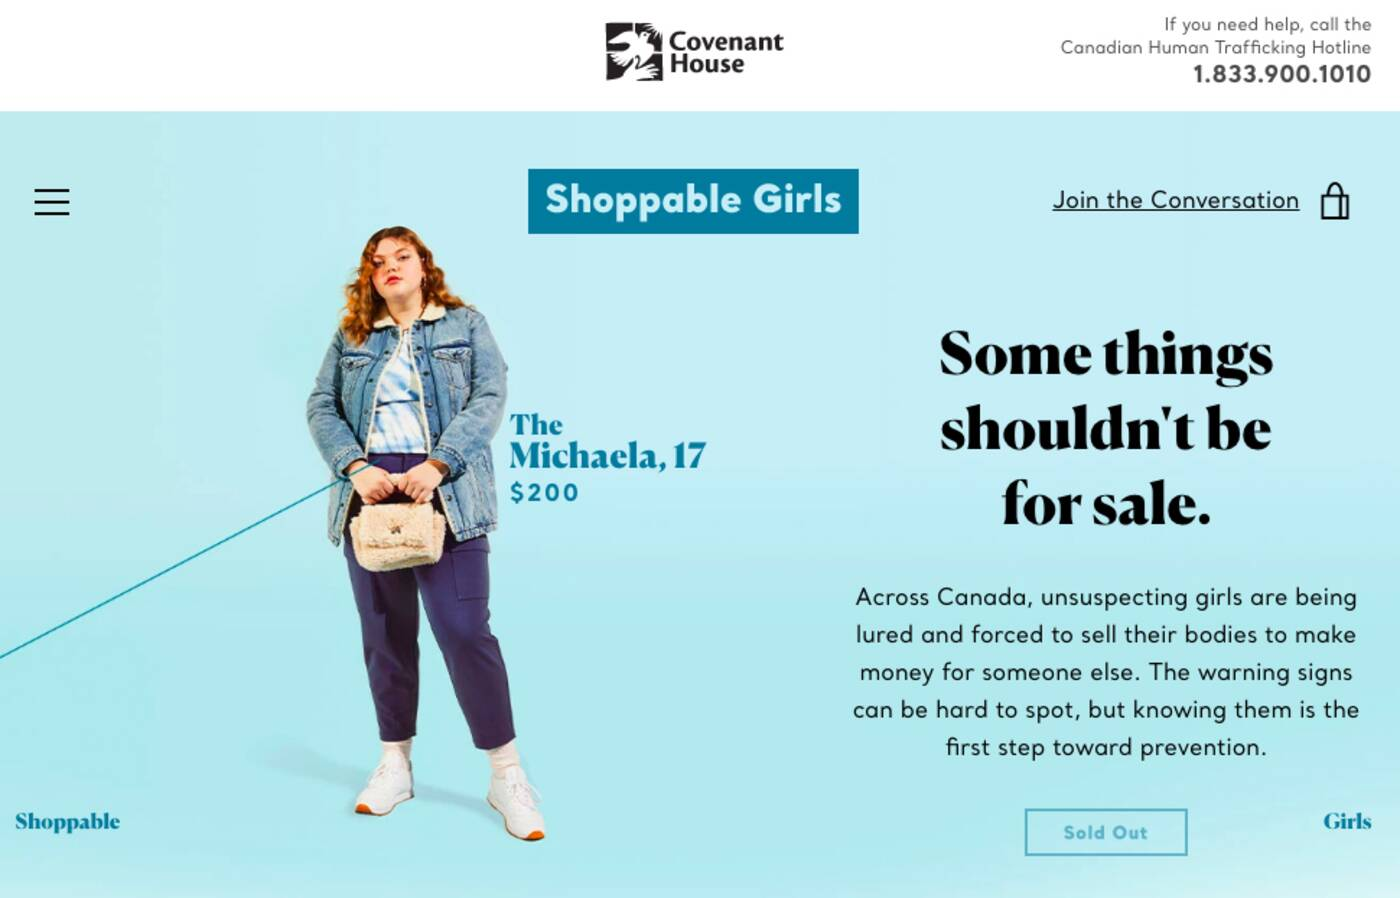 shoppable girls toronto